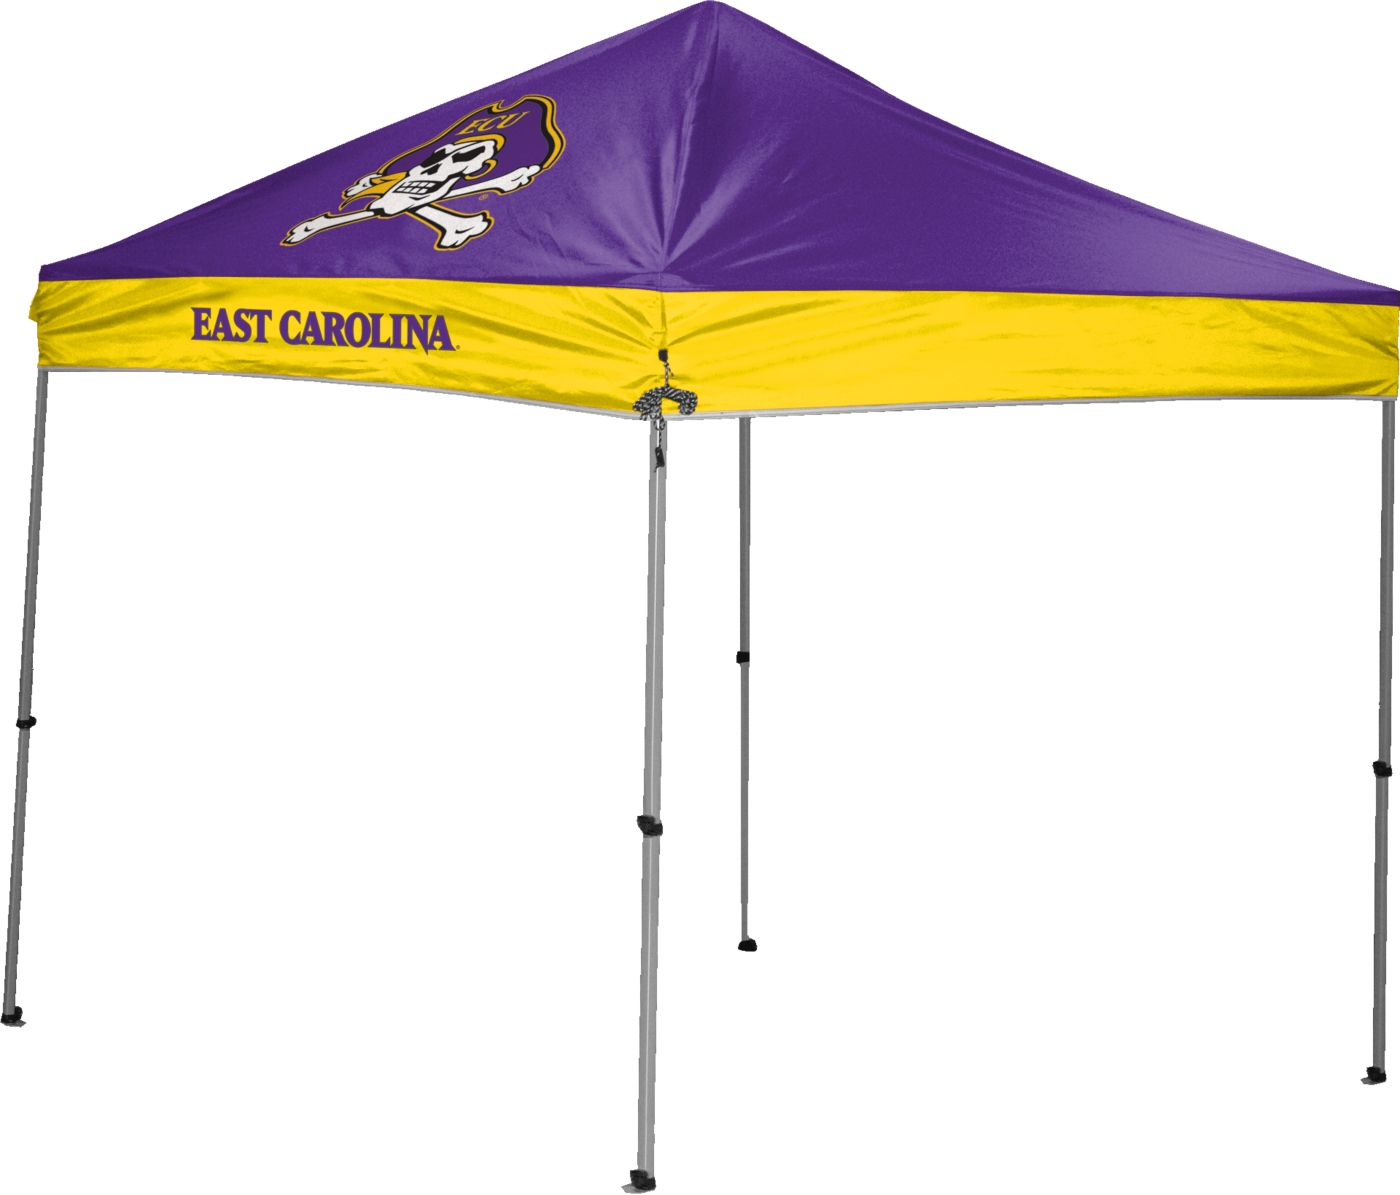 Rawlings East Carolina Pirates 9' x 9' Sideline Canopy Tent